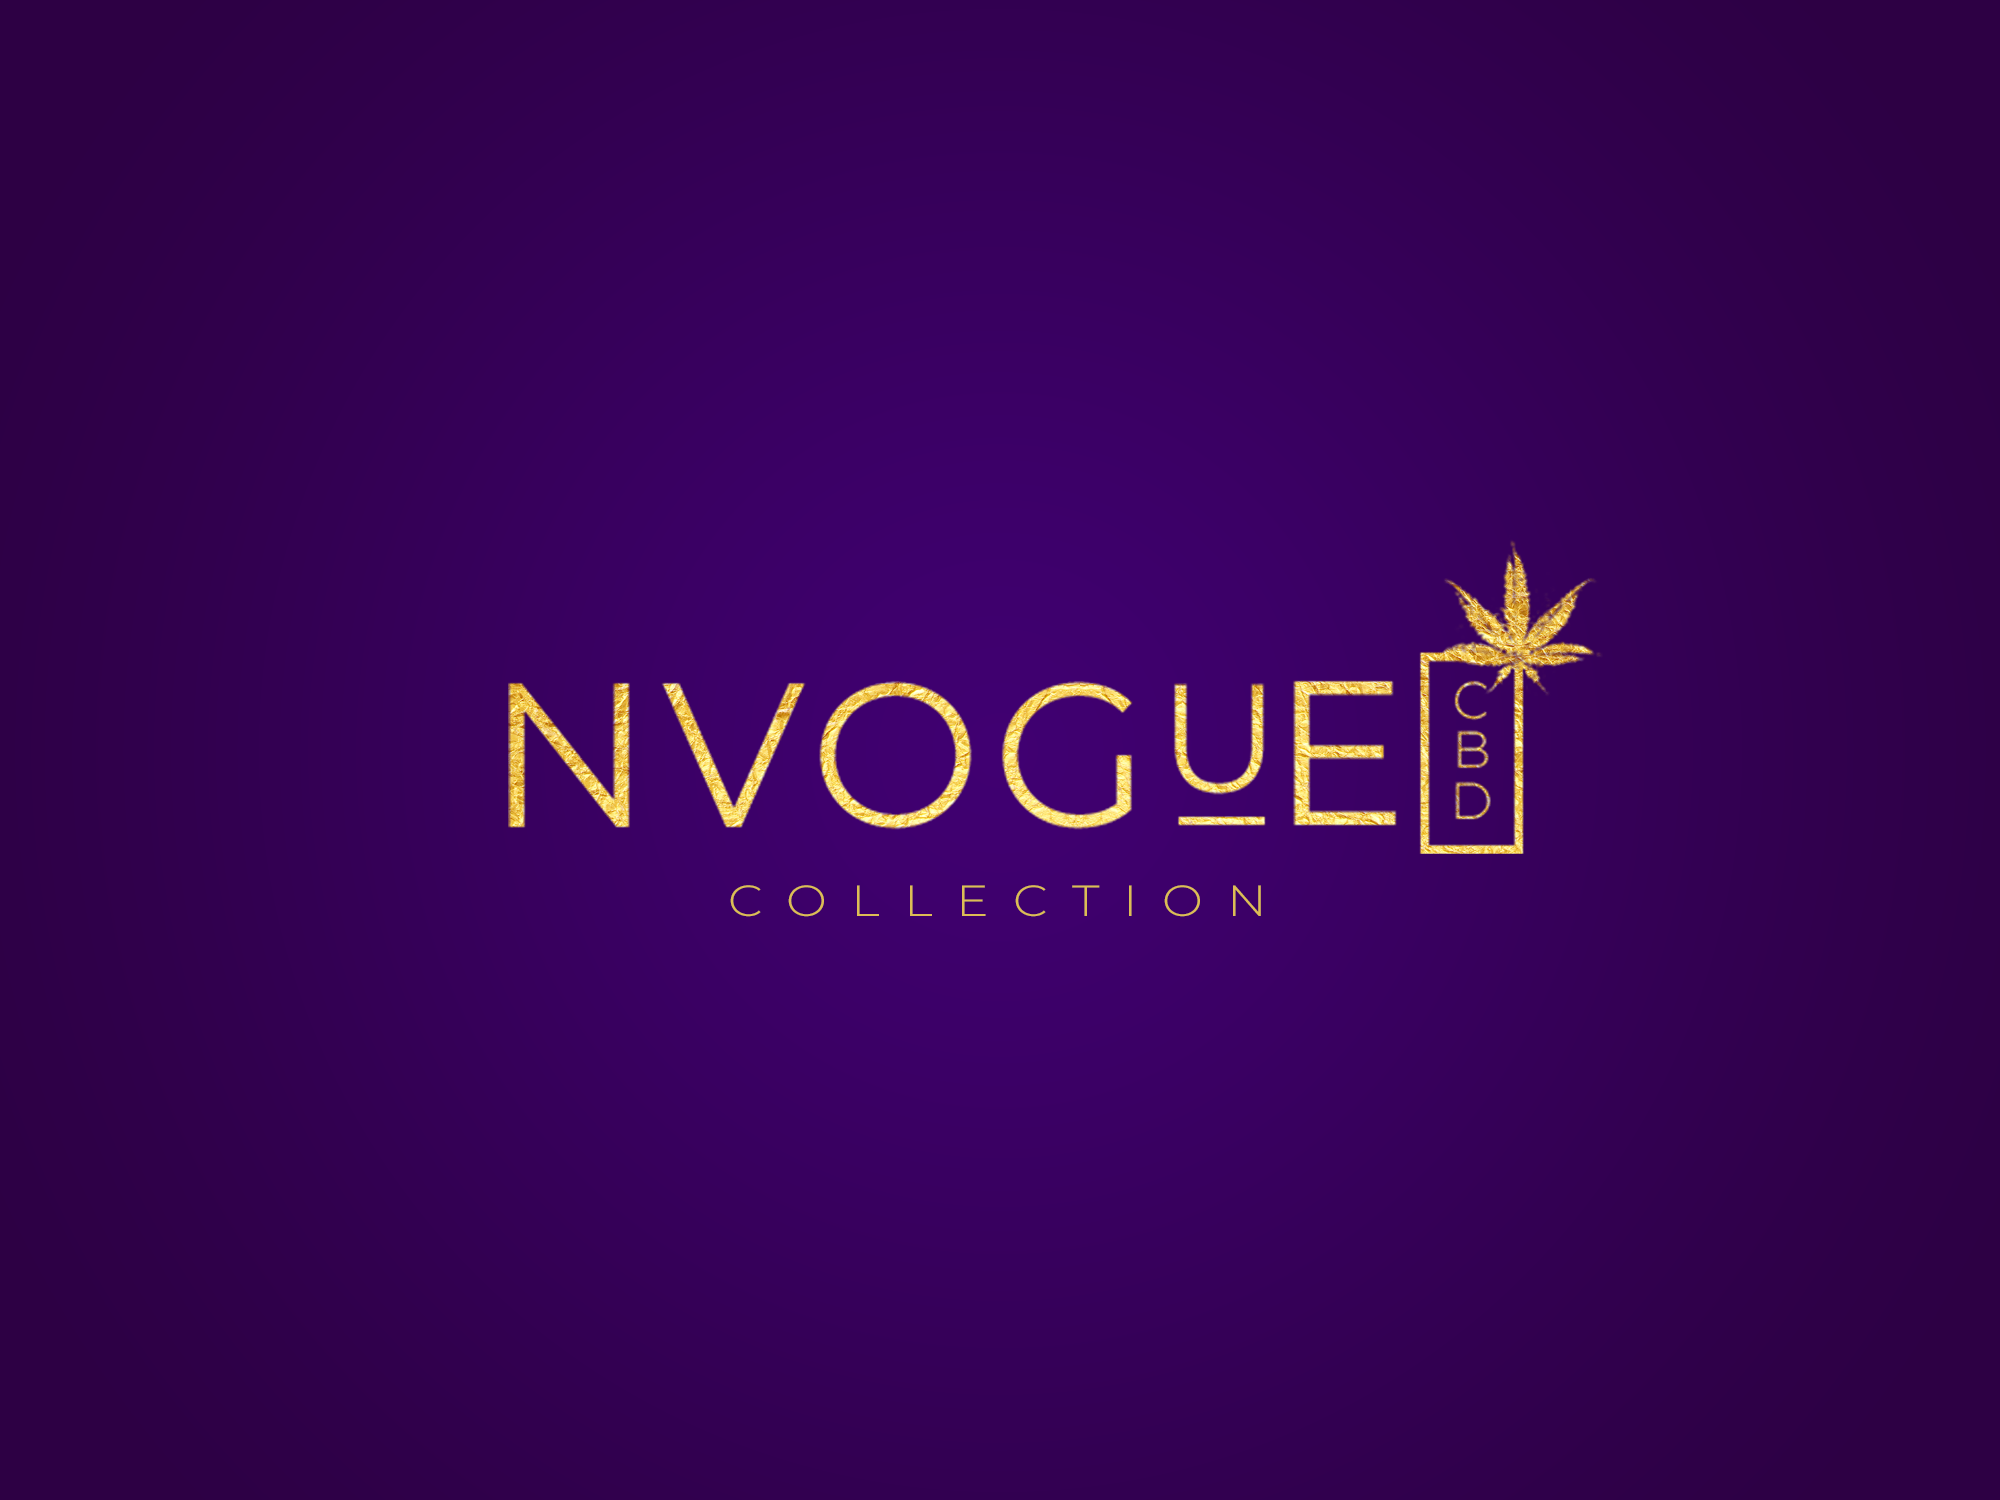 nvogue_cbd_logo_final.png